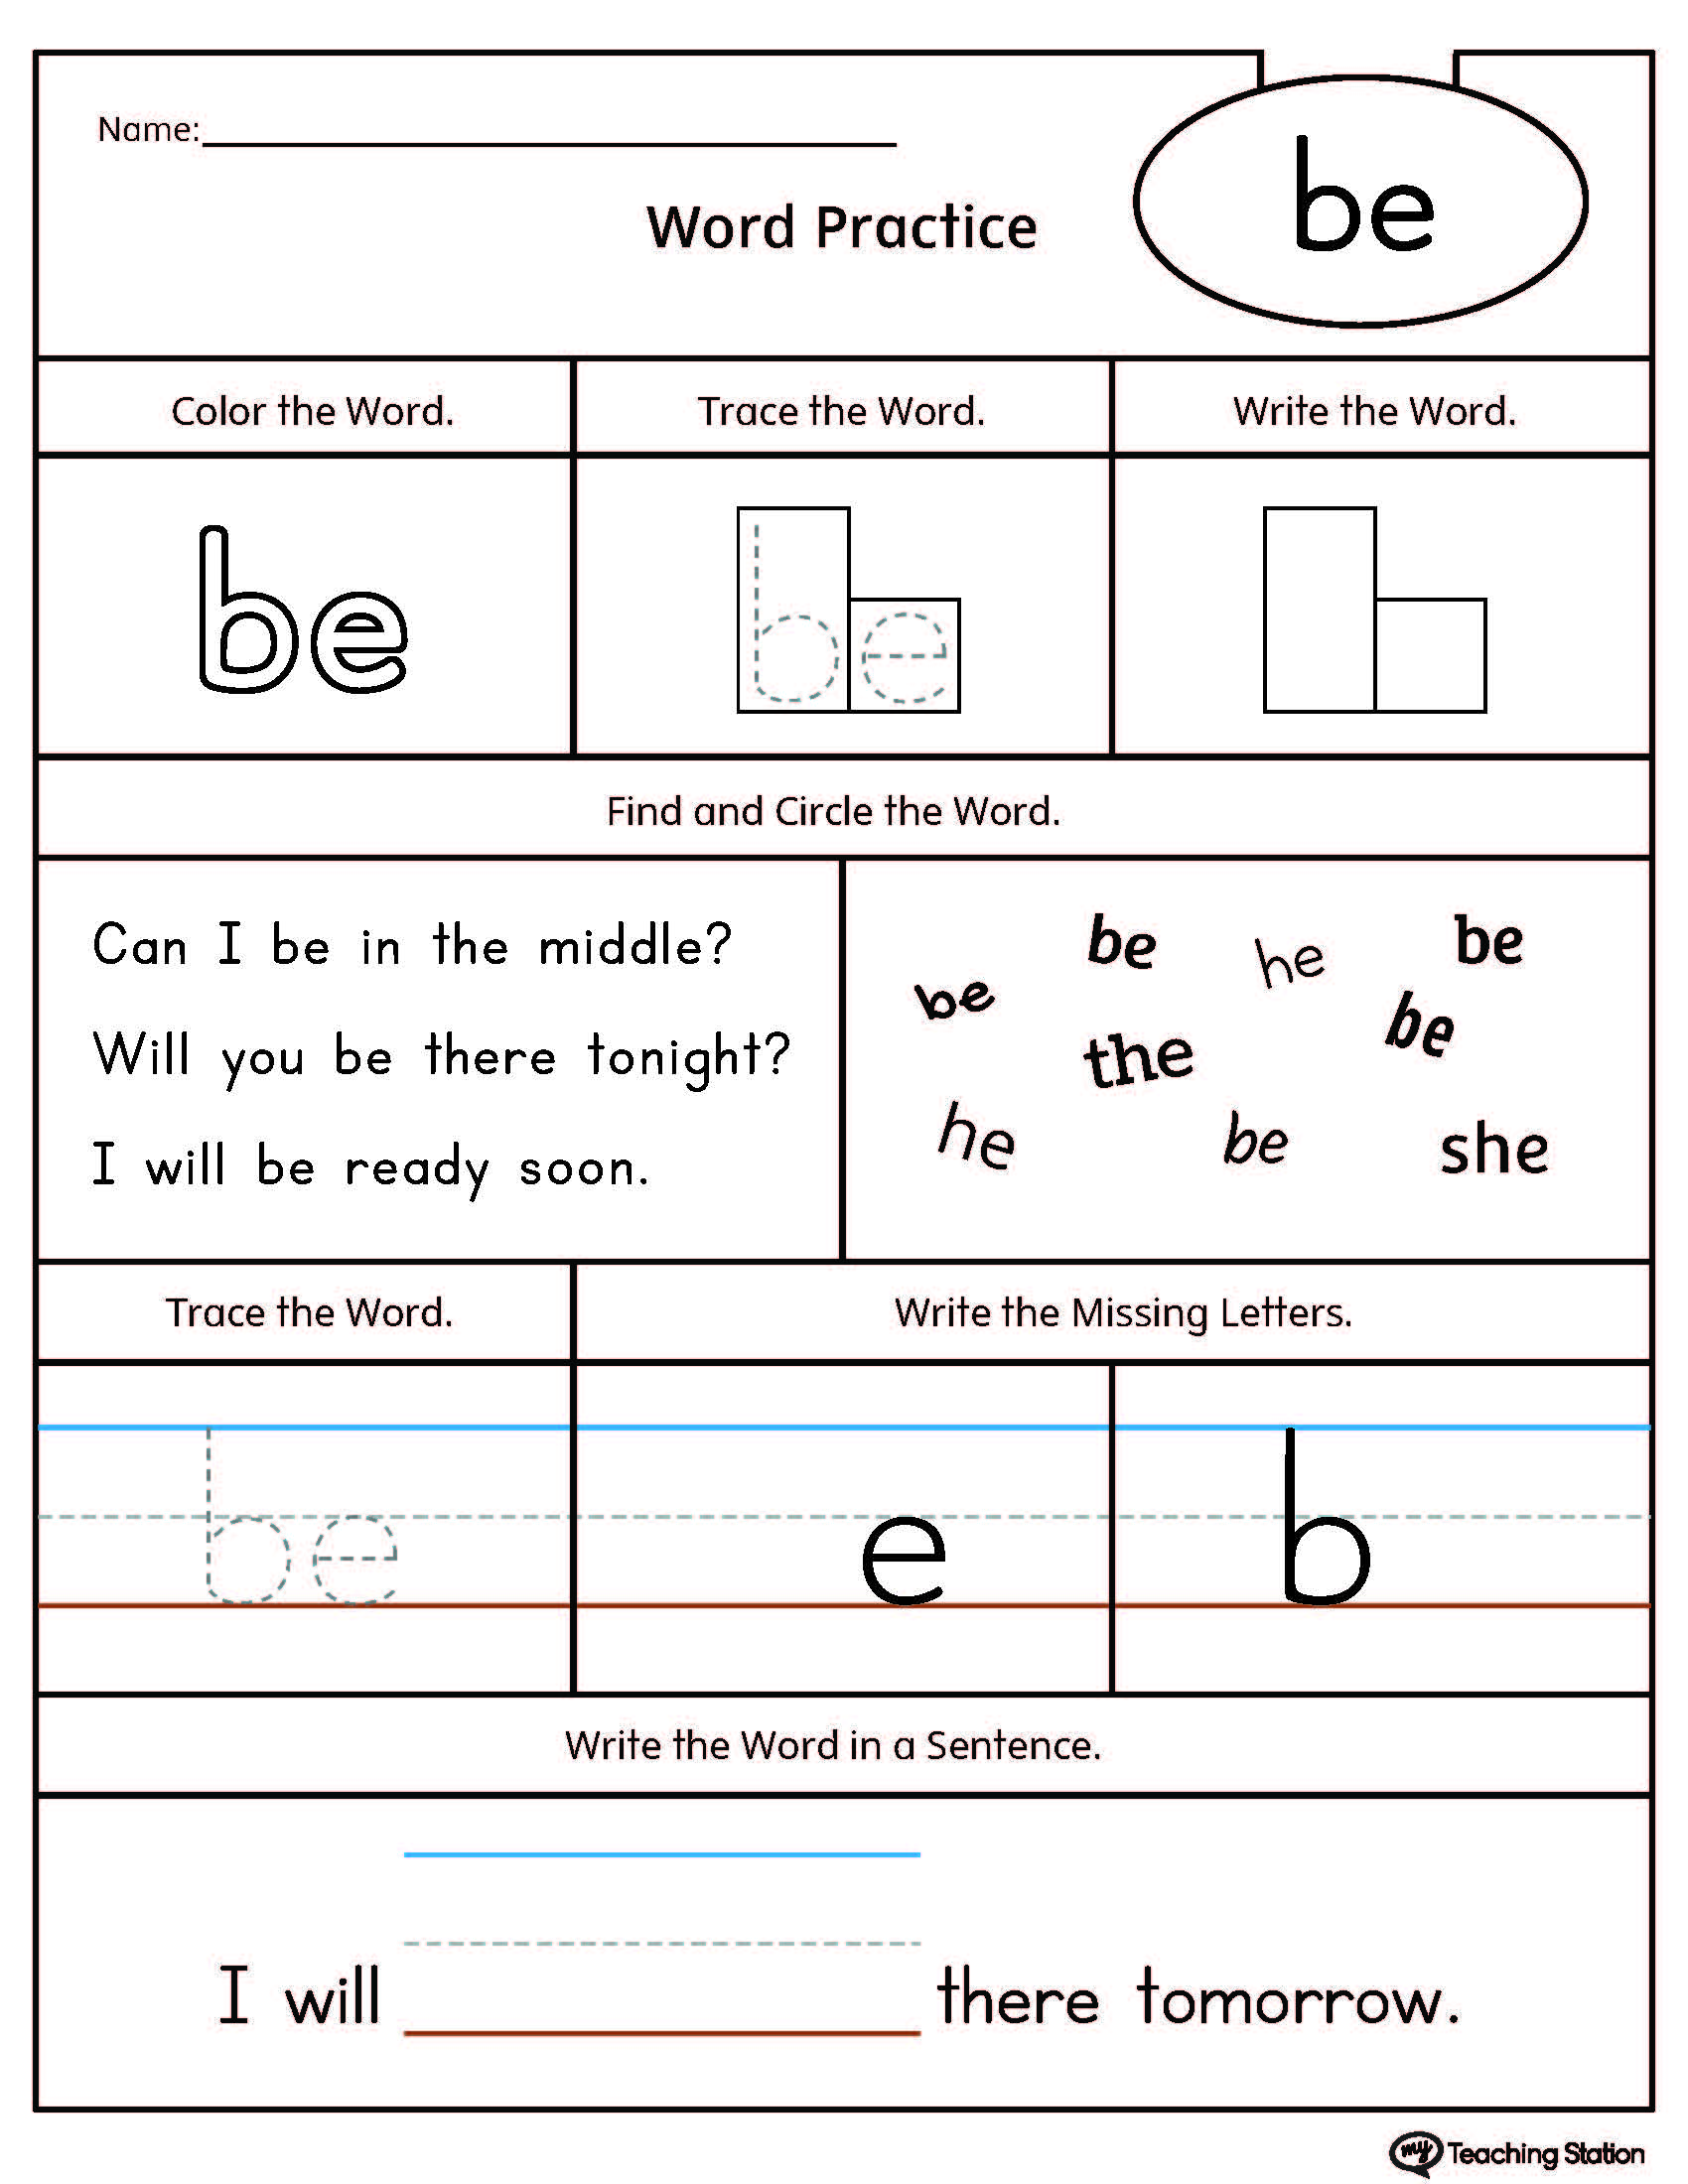 HighFrequency Word BE Printable Worksheet – High Frequency Words Kindergarten Worksheets